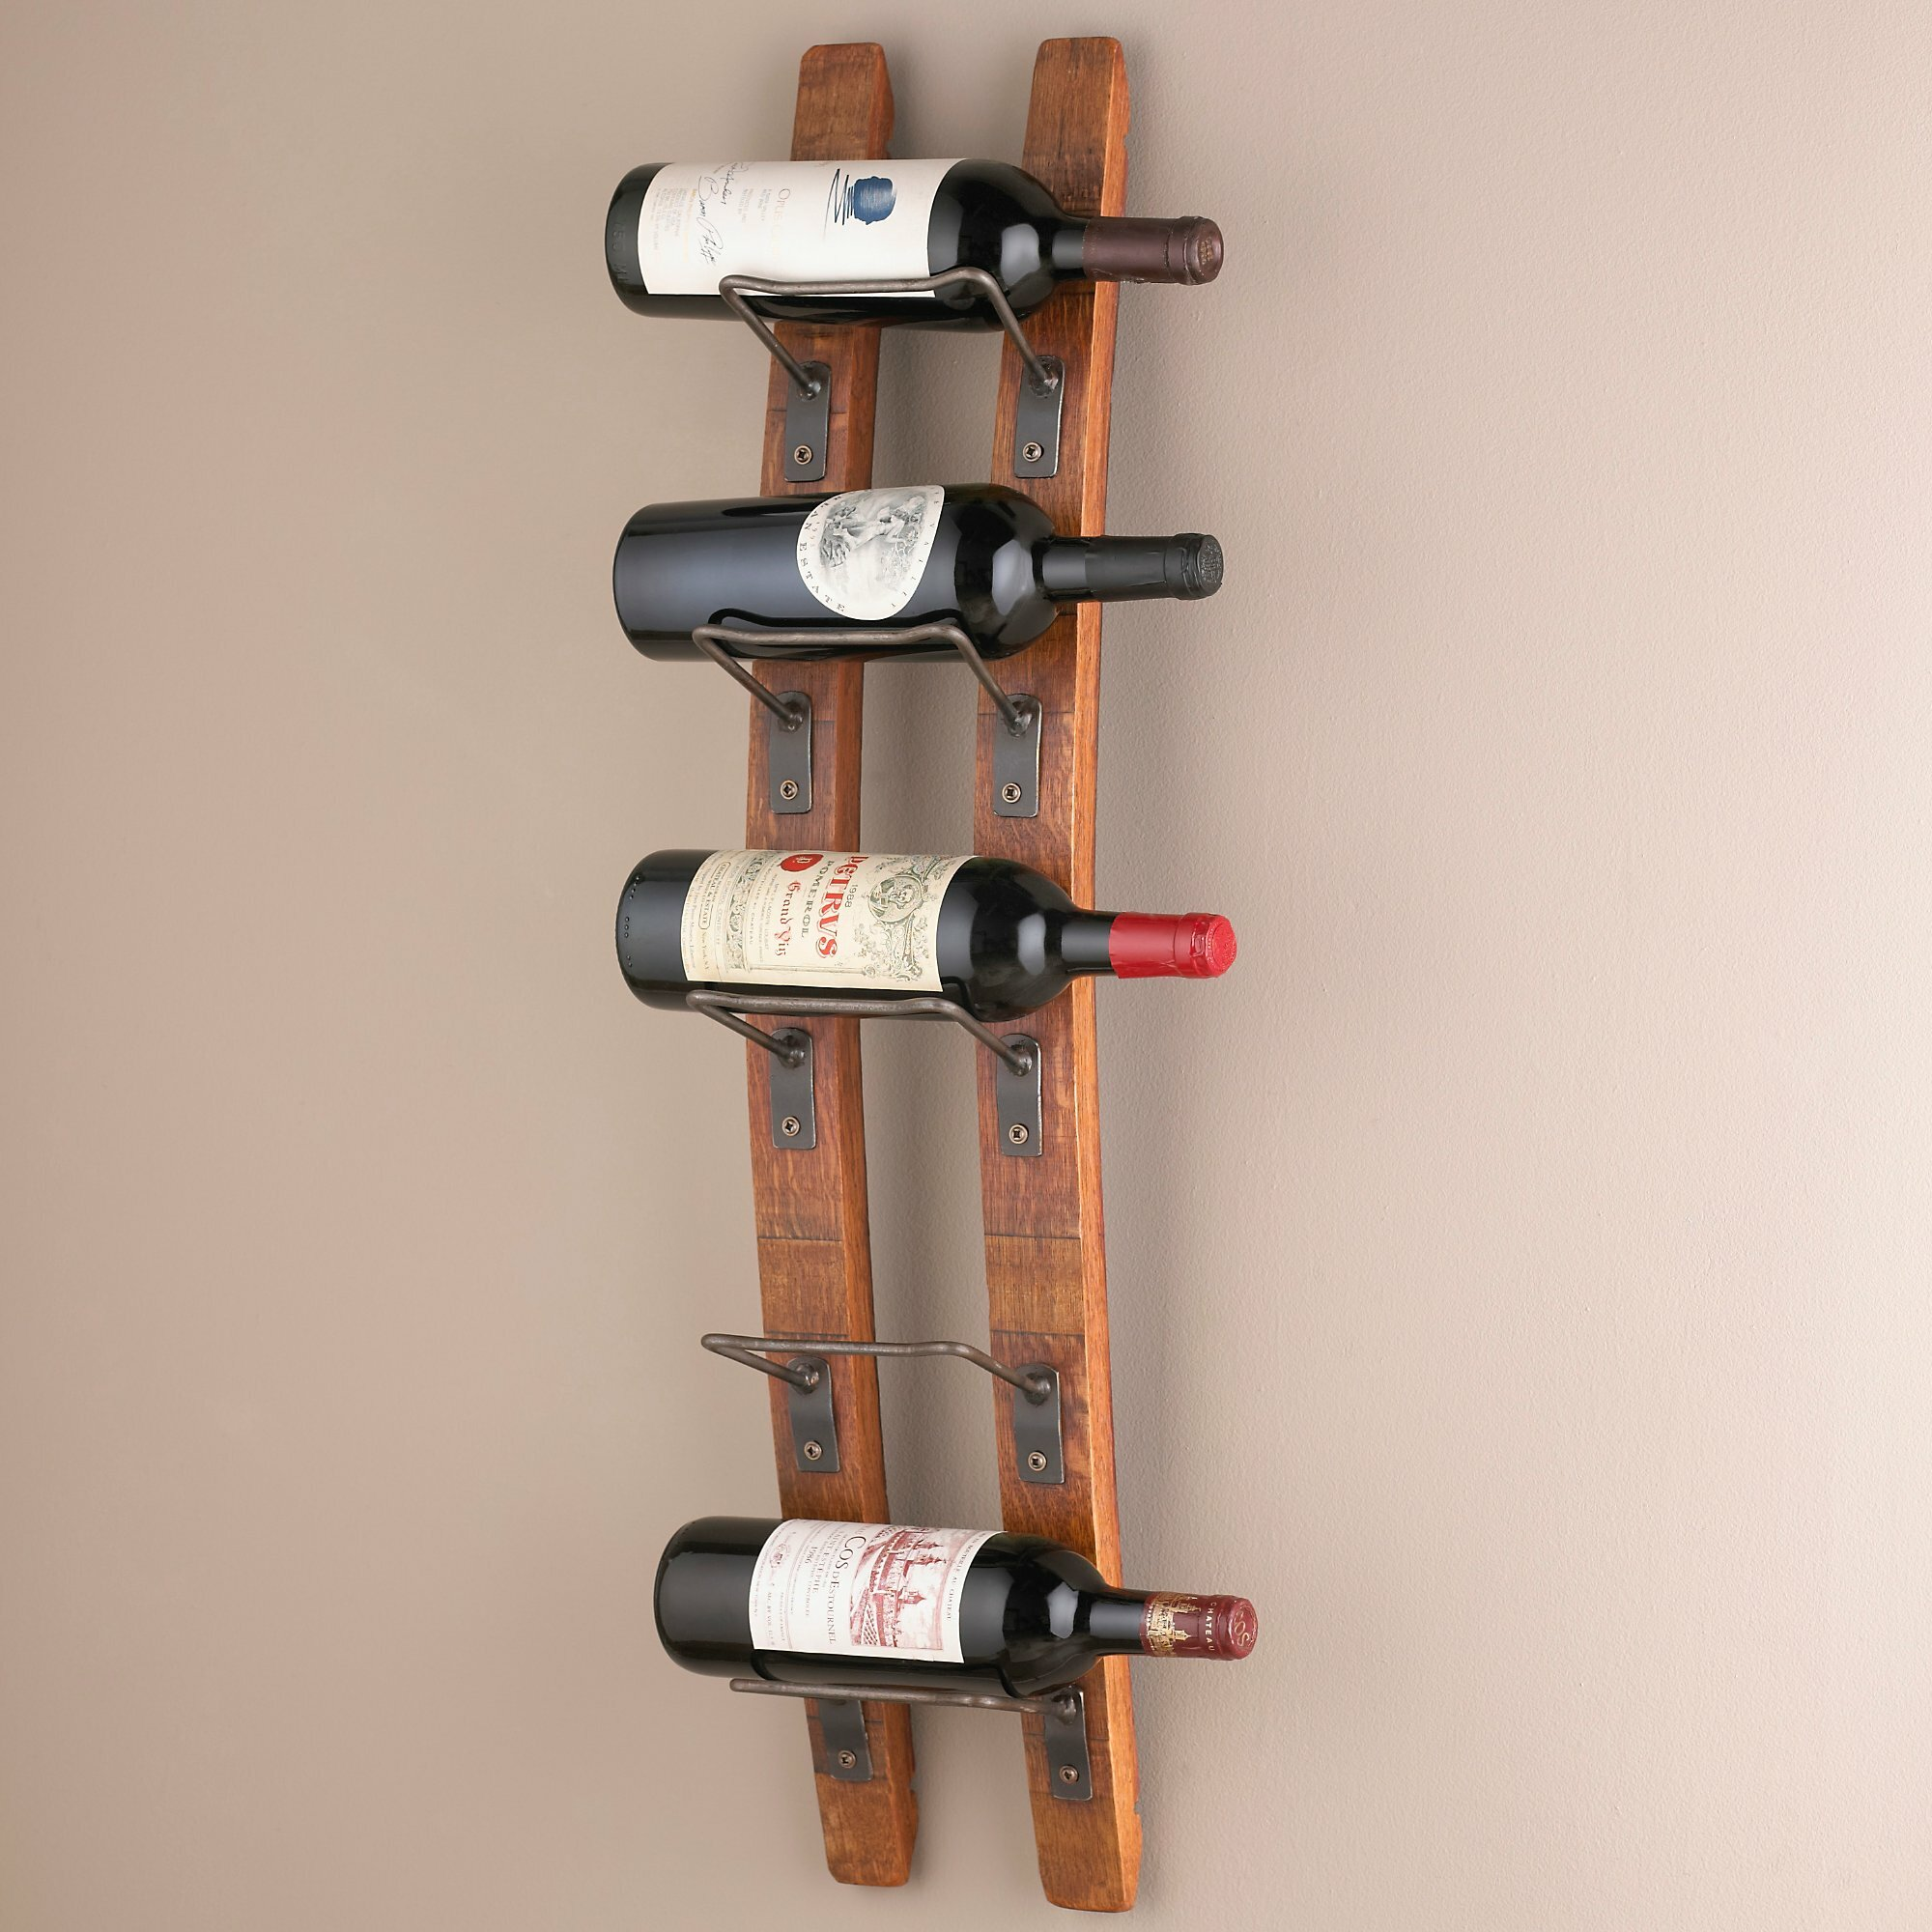 Wine Racks For Cabinets Wooden Wine Racks Cabinets Youll Love Wayfair